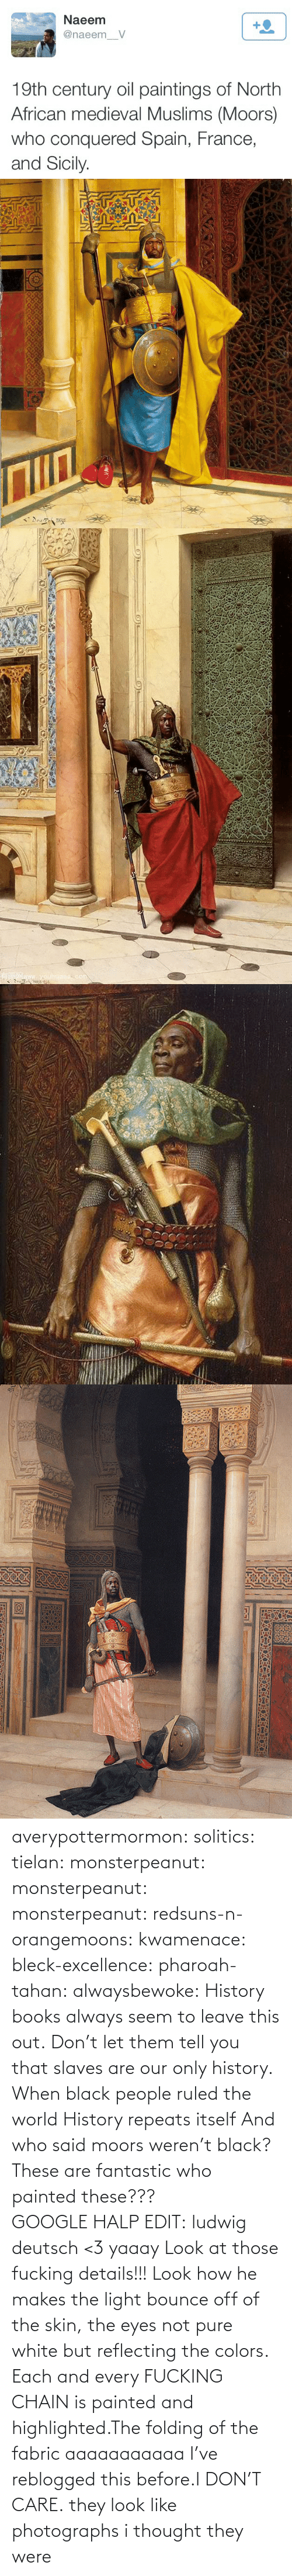 chain: Naeem  +2  @naeem_V  19th century oil paintings of North  African medieval Muslims (Moors)  who conquered Spain, France,  and Sicily.   Nww.youhuaua com averypottermormon: solitics:  tielan:  monsterpeanut:  monsterpeanut:  monsterpeanut:  redsuns-n-orangemoons:  kwamenace:  bleck-excellence:  pharoah-tahan:  alwaysbewoke:  History books always seem to leave this out.  Don't let them tell you that slaves are our only history.  When black people ruled the world  History repeats itself  And who said moors weren't black?  These are fantastic who painted these???GOOGLE HALP EDIT: ludwig deutsch <3   yaaay   Look at those fucking details!!! Look how he makes the light bounce off of the skin, the eyes not pure white but reflecting the colors. Each and every FUCKING CHAIN is painted and highlighted.The folding of the fabric aaaaaaaaaaa  I've reblogged this before.I DON'T CARE.  they look like photographs   i thought they were